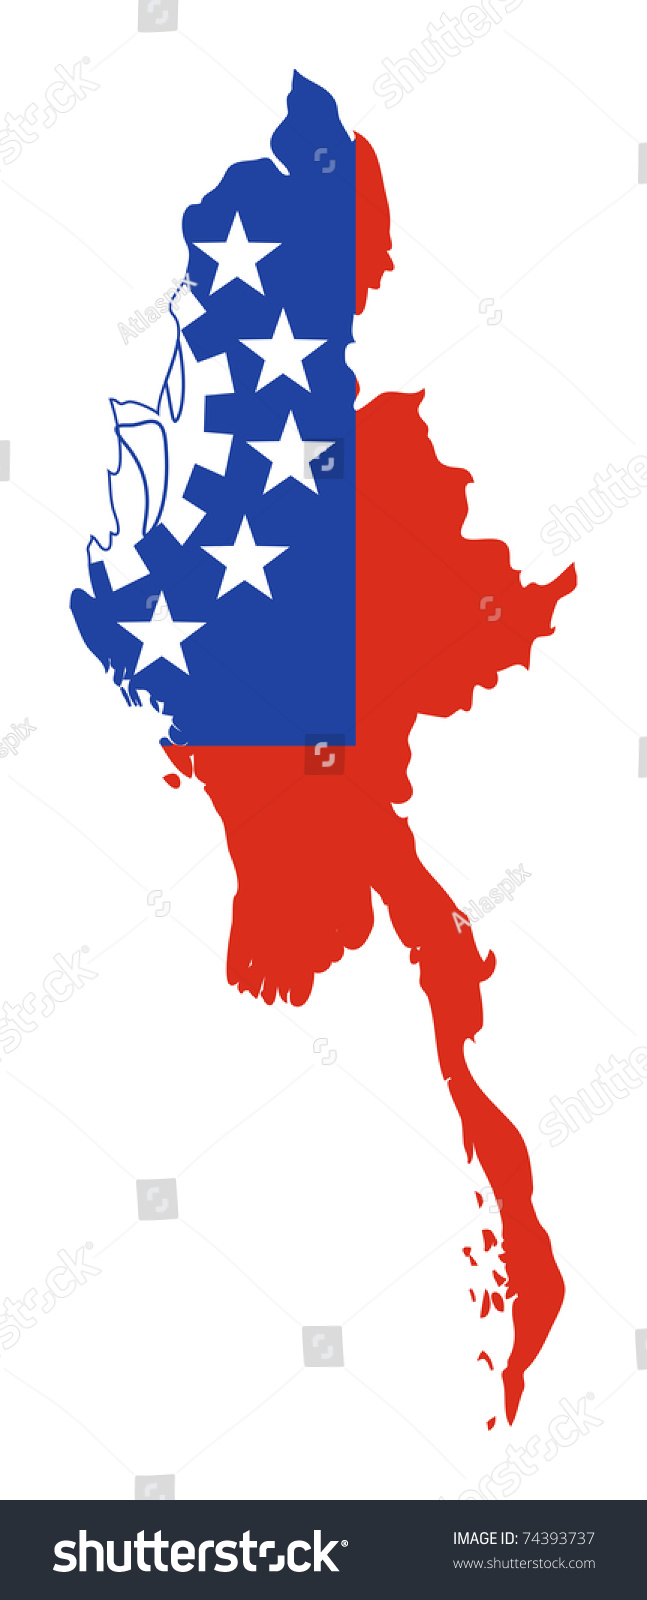 Illustration Of Burma Or Myanmar Flag On Map Of Country; Isolated On White Background ...